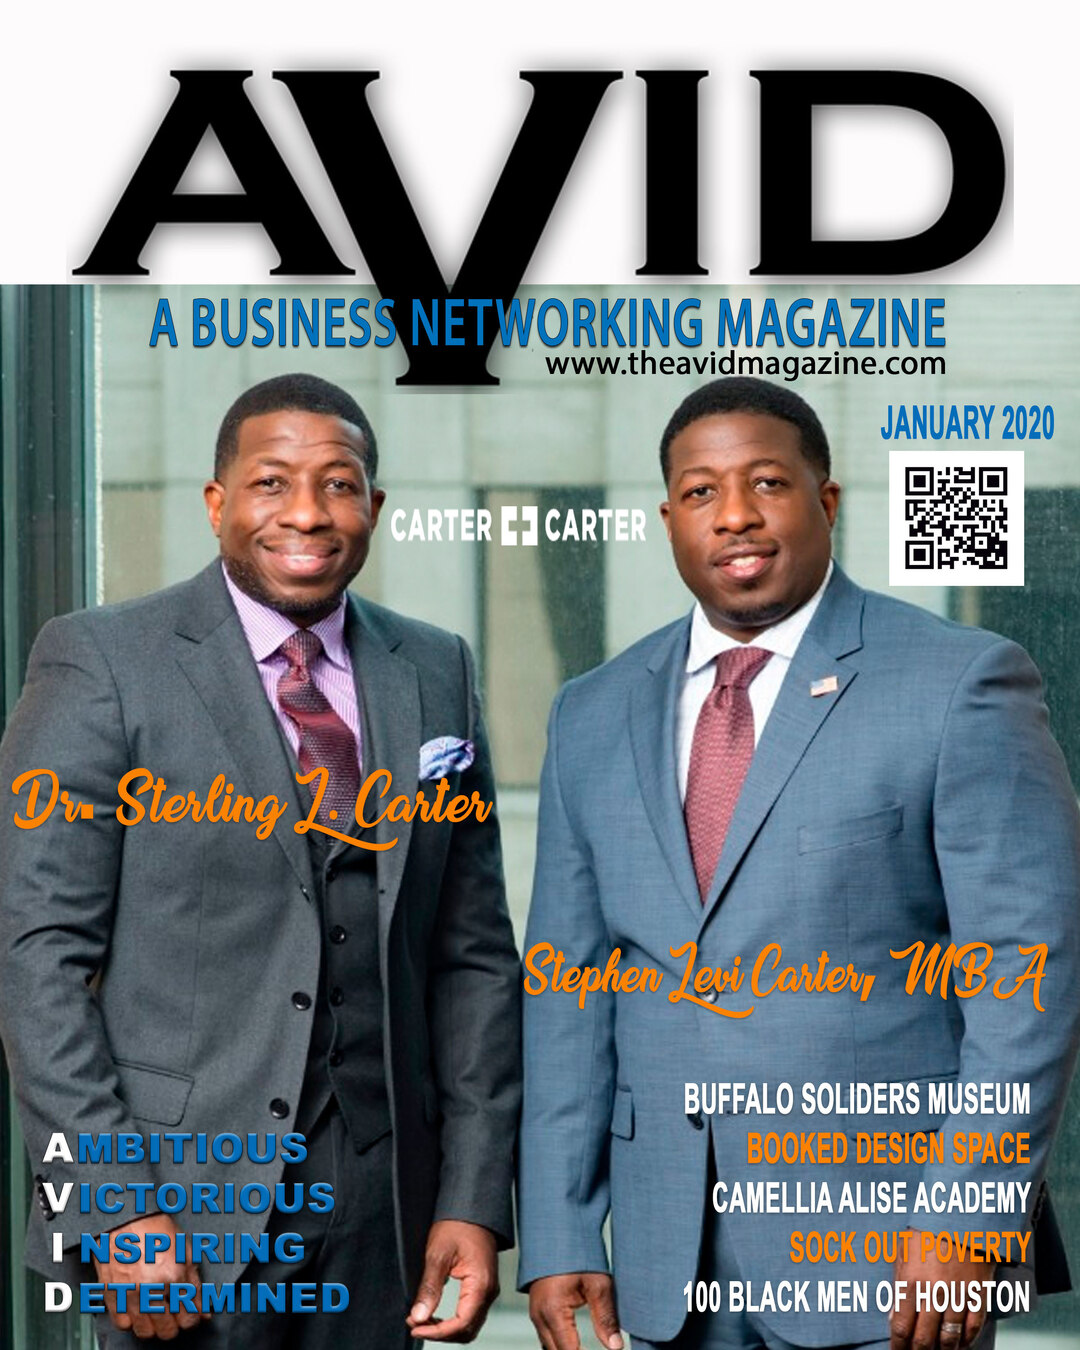 Page 1 of AVID Magazine Issue #8 January 2020